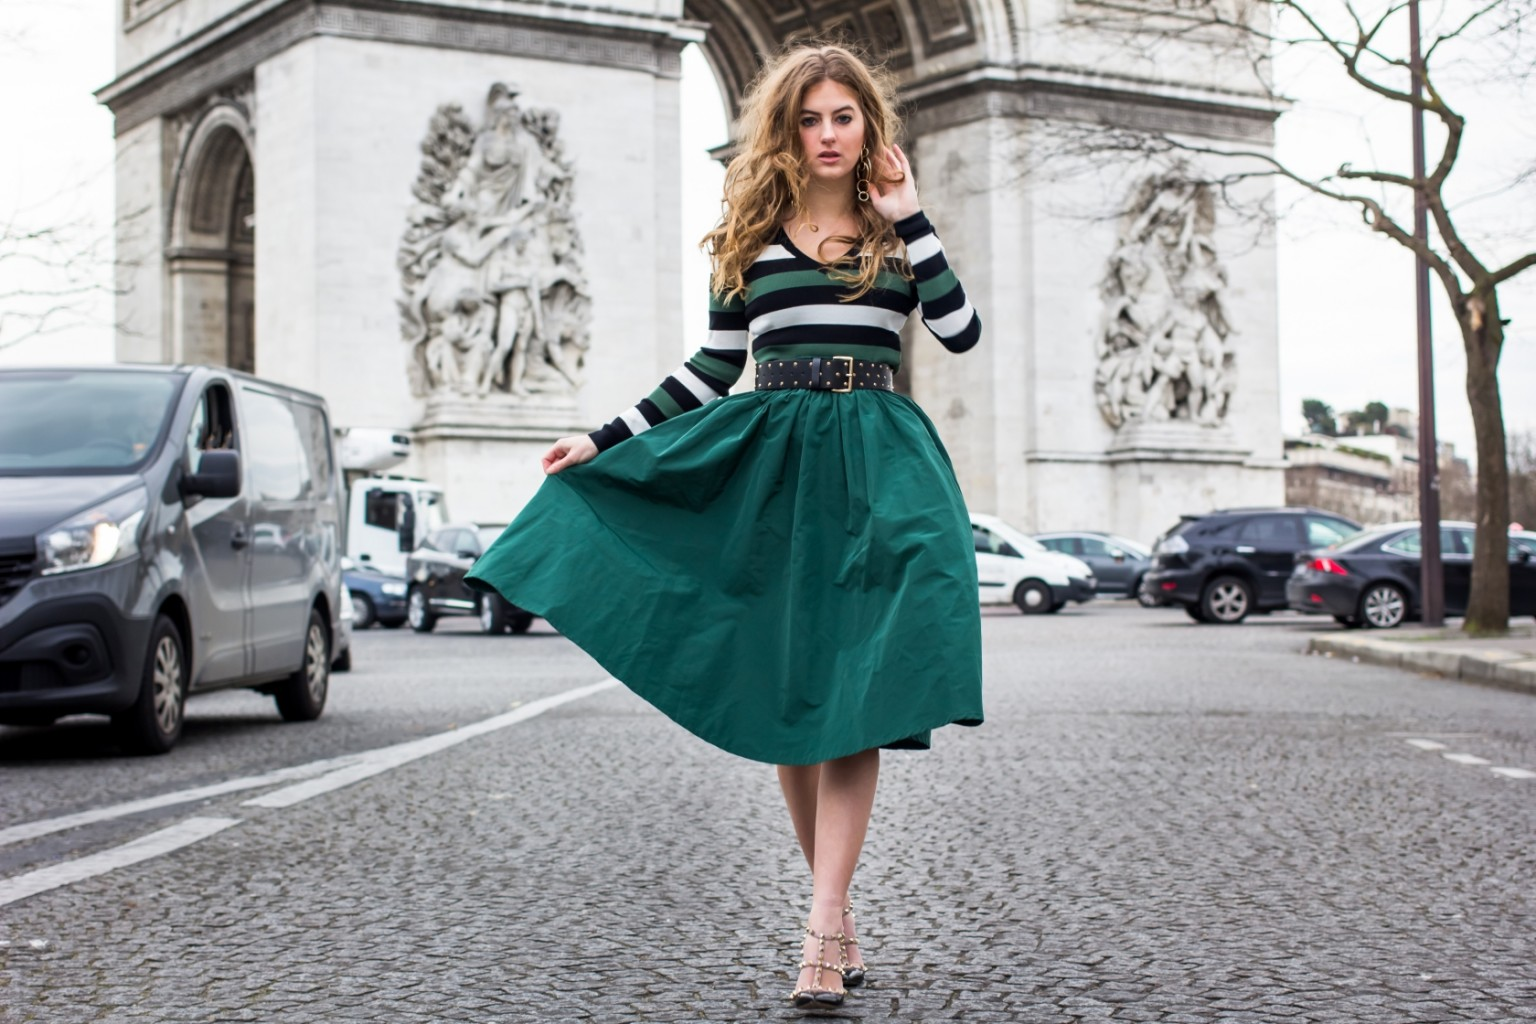 THE GIRL WITH THE GREEN SKIRT